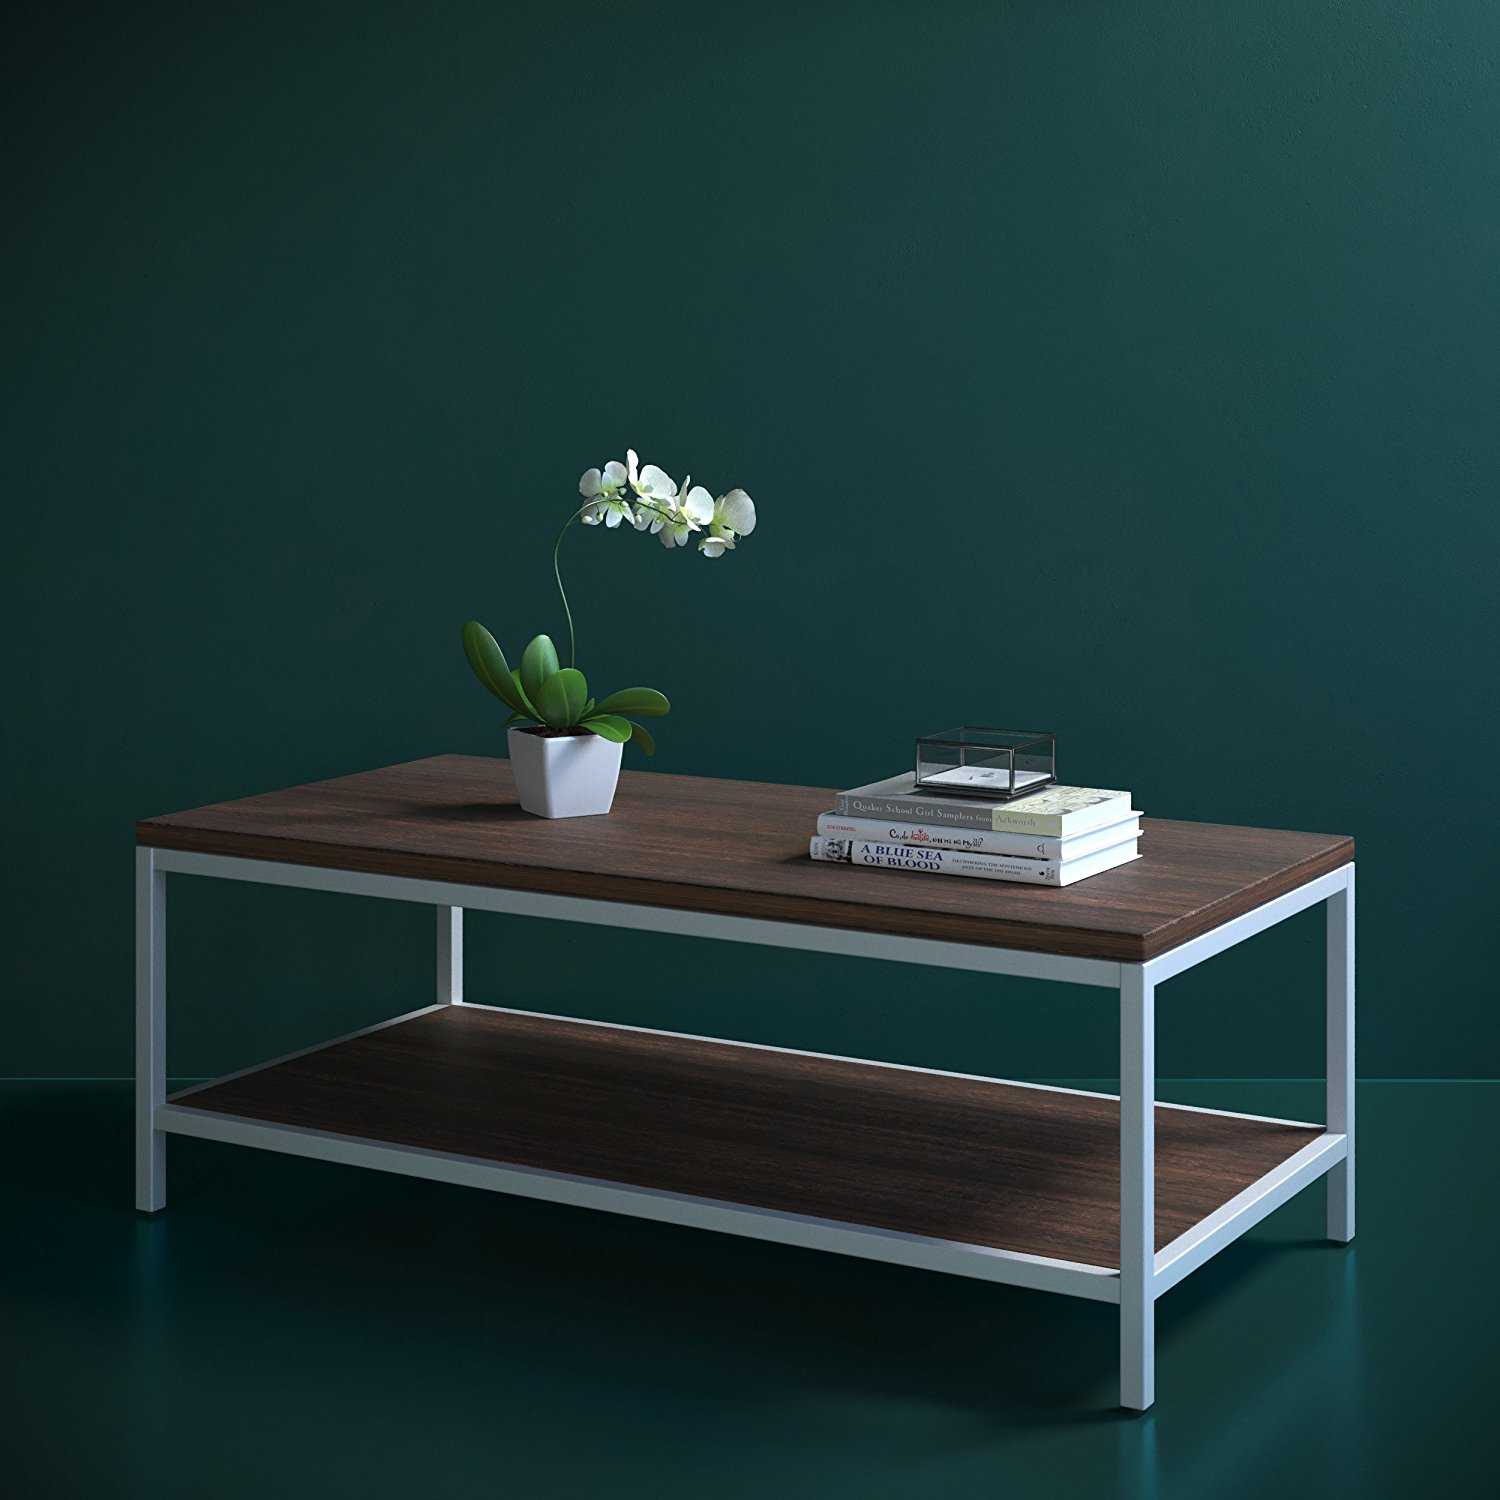 Attirant Get Quotations · Bamboogle BKL 20 S 4924 G Industrial Chic Bamboo Furniture  Rustic Coffee